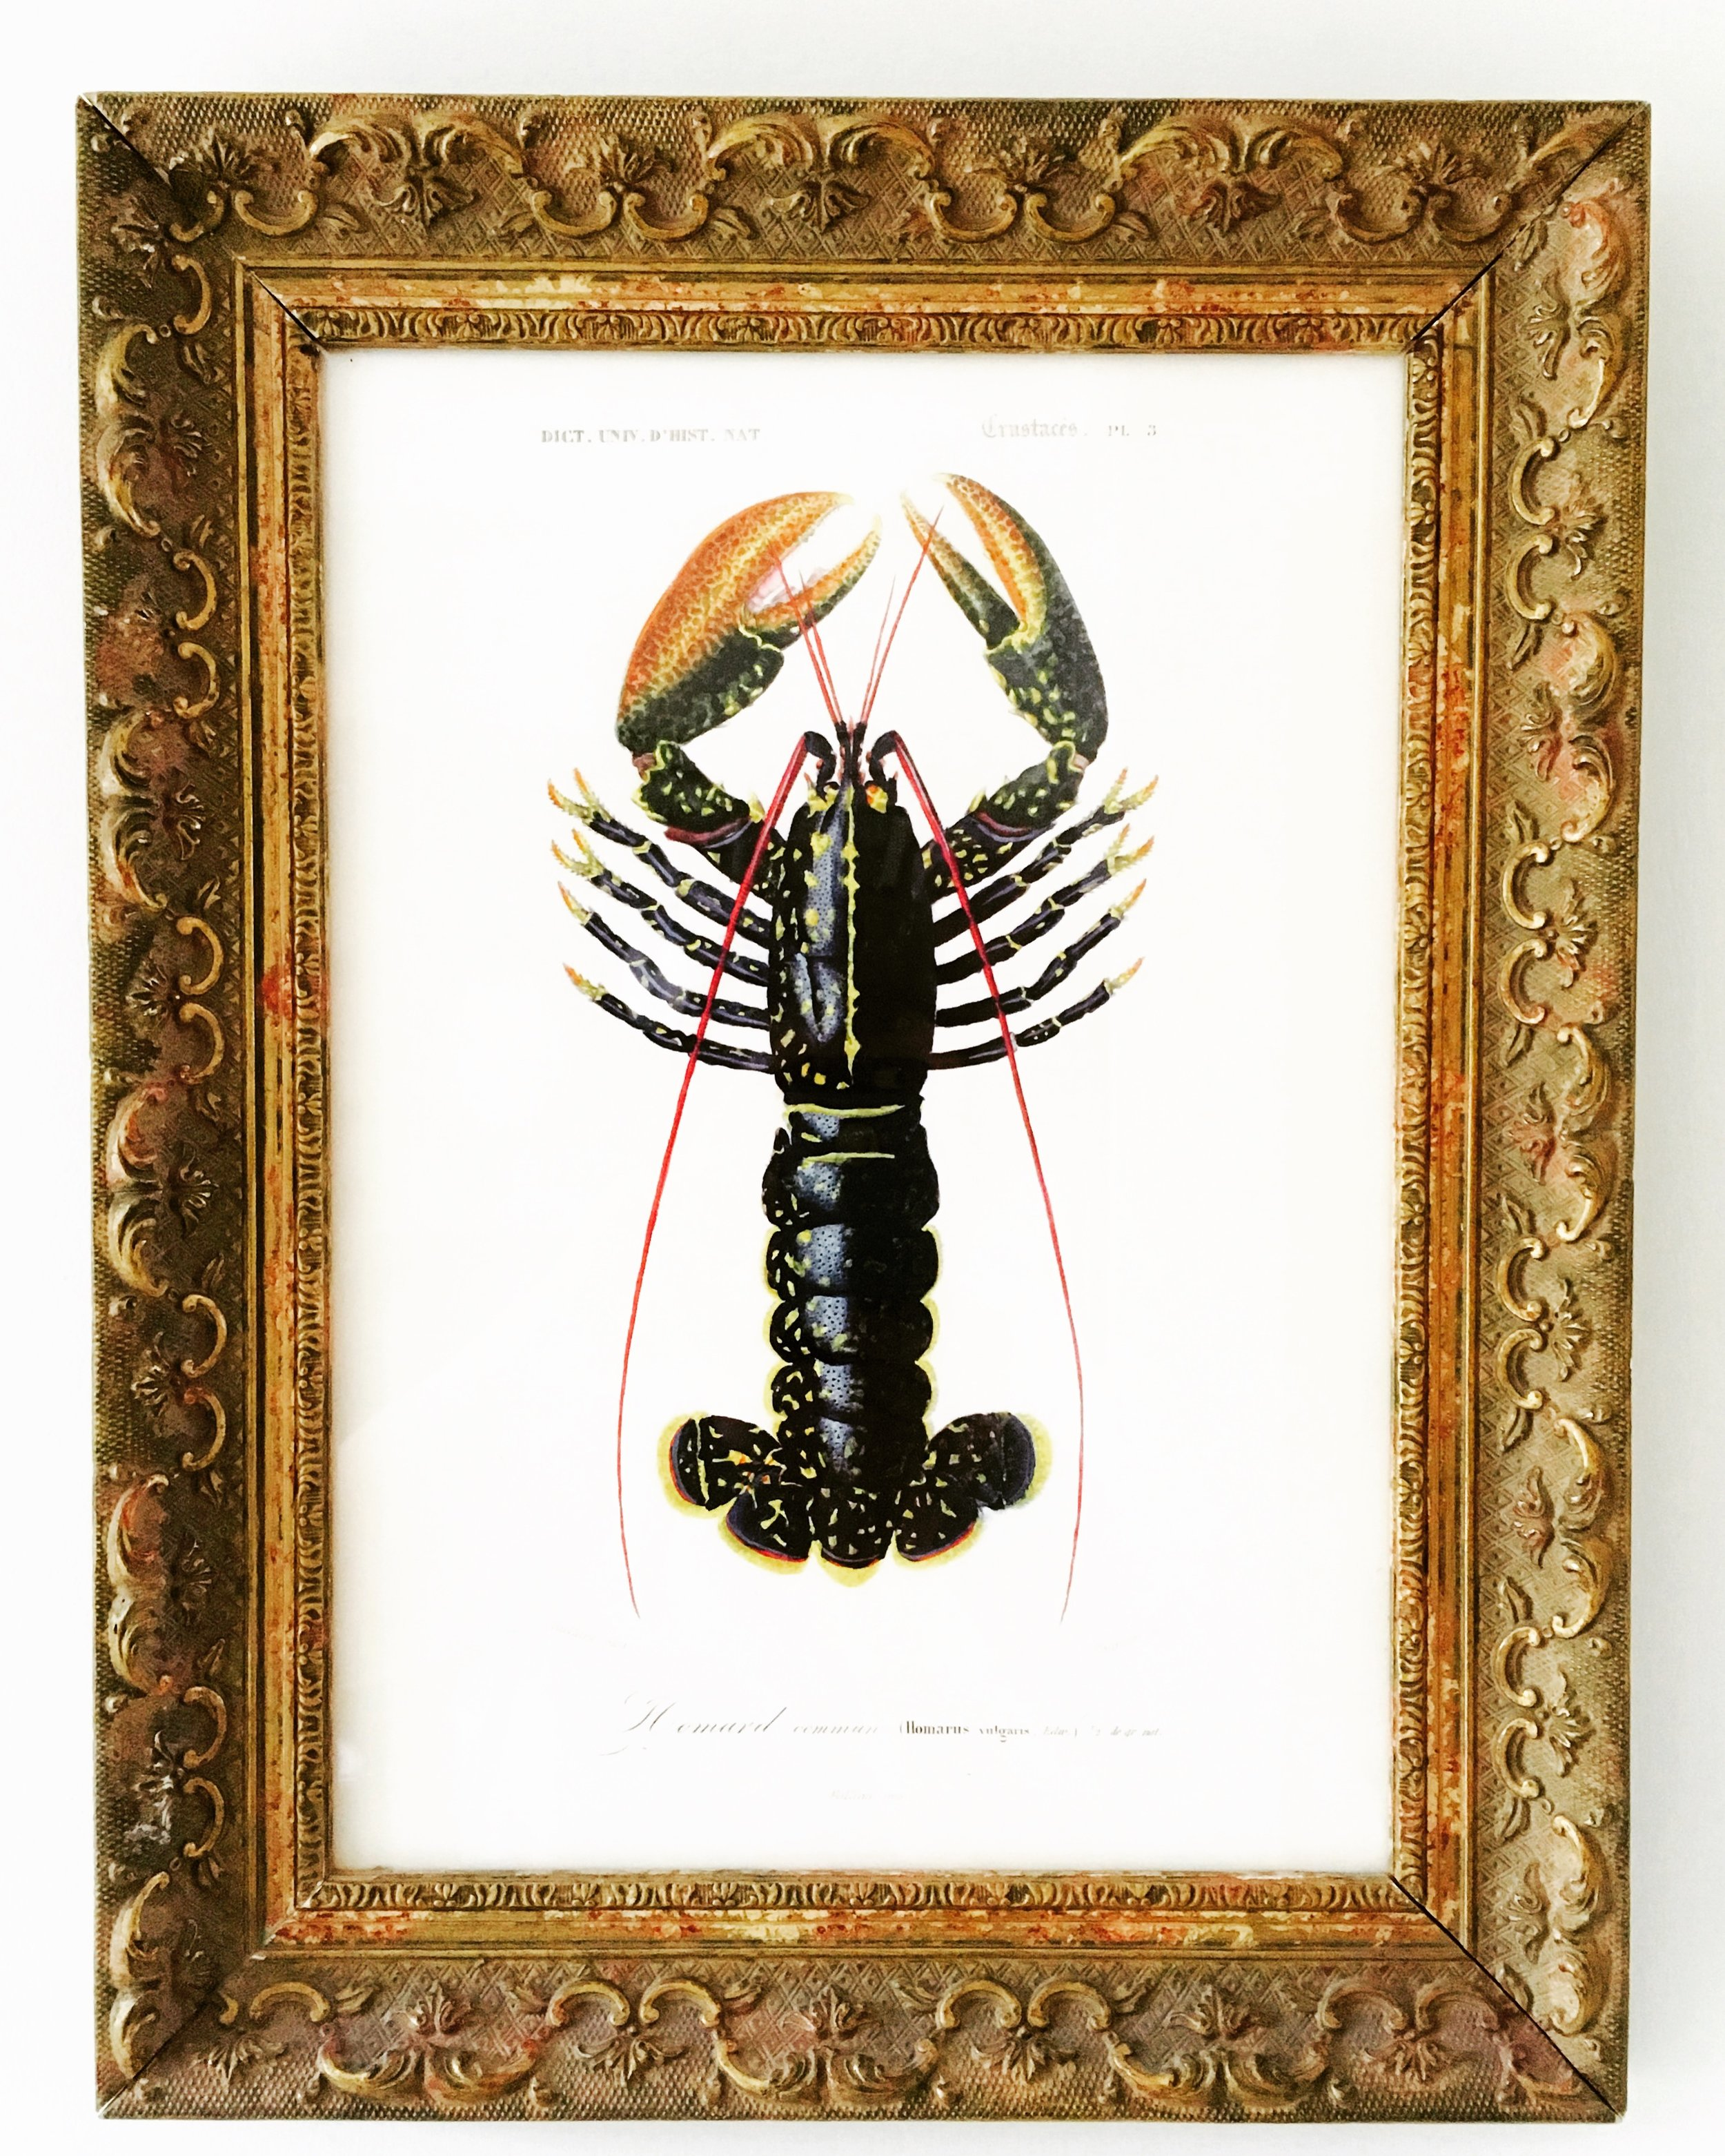 The frame should complement the artwork, not upstage it. -